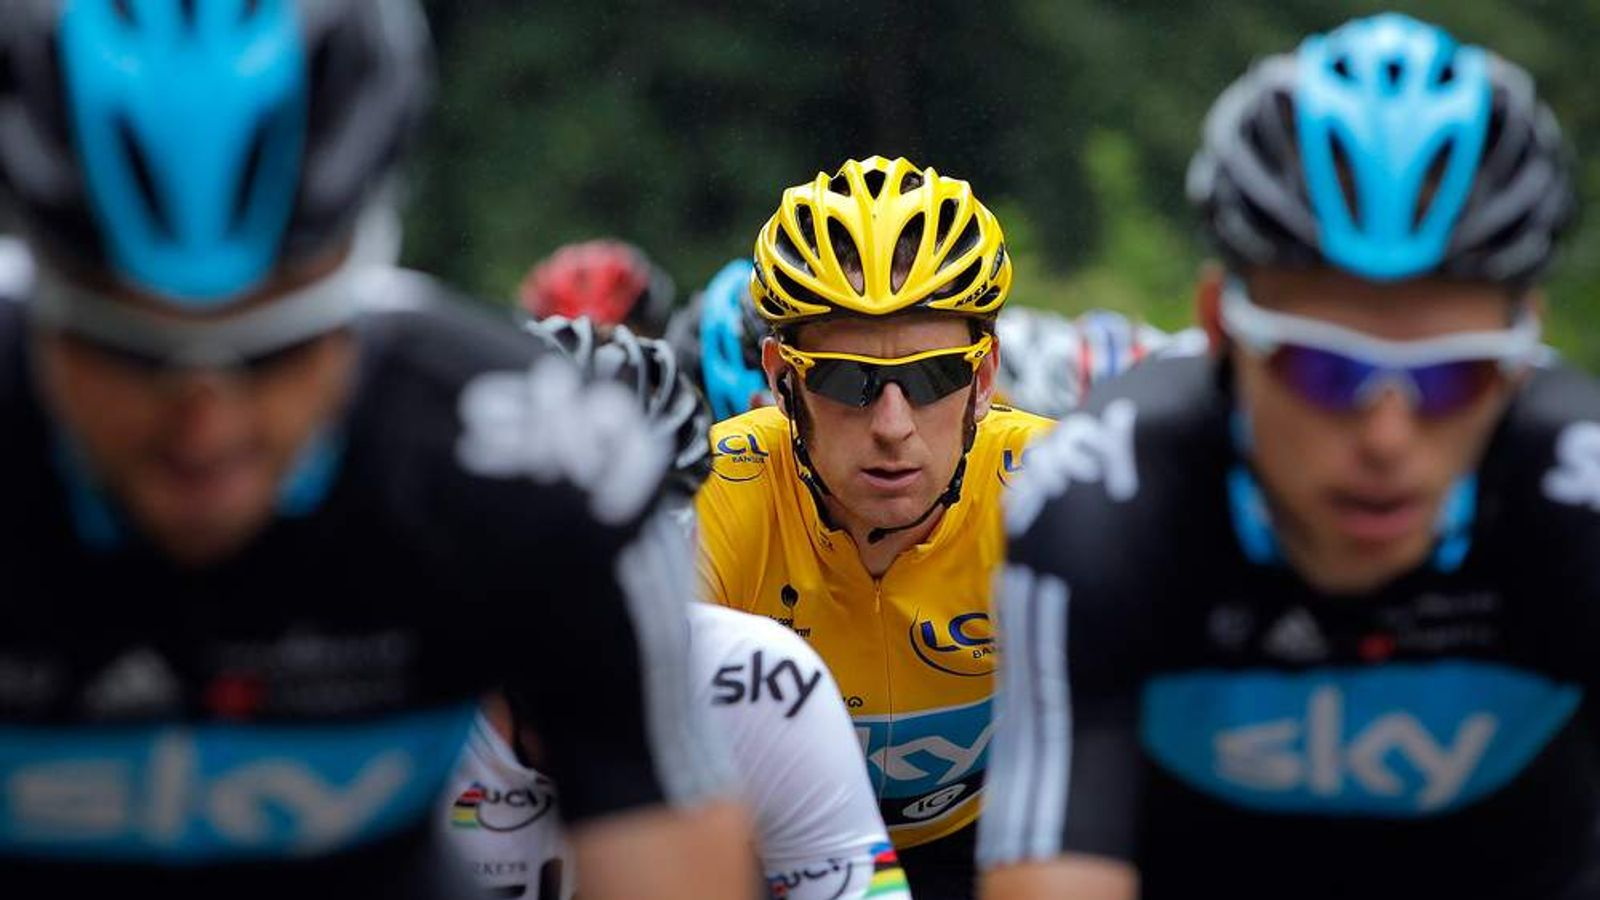 Bradley Wiggins In Action On Stage 14 Of The 2012 Tour De France